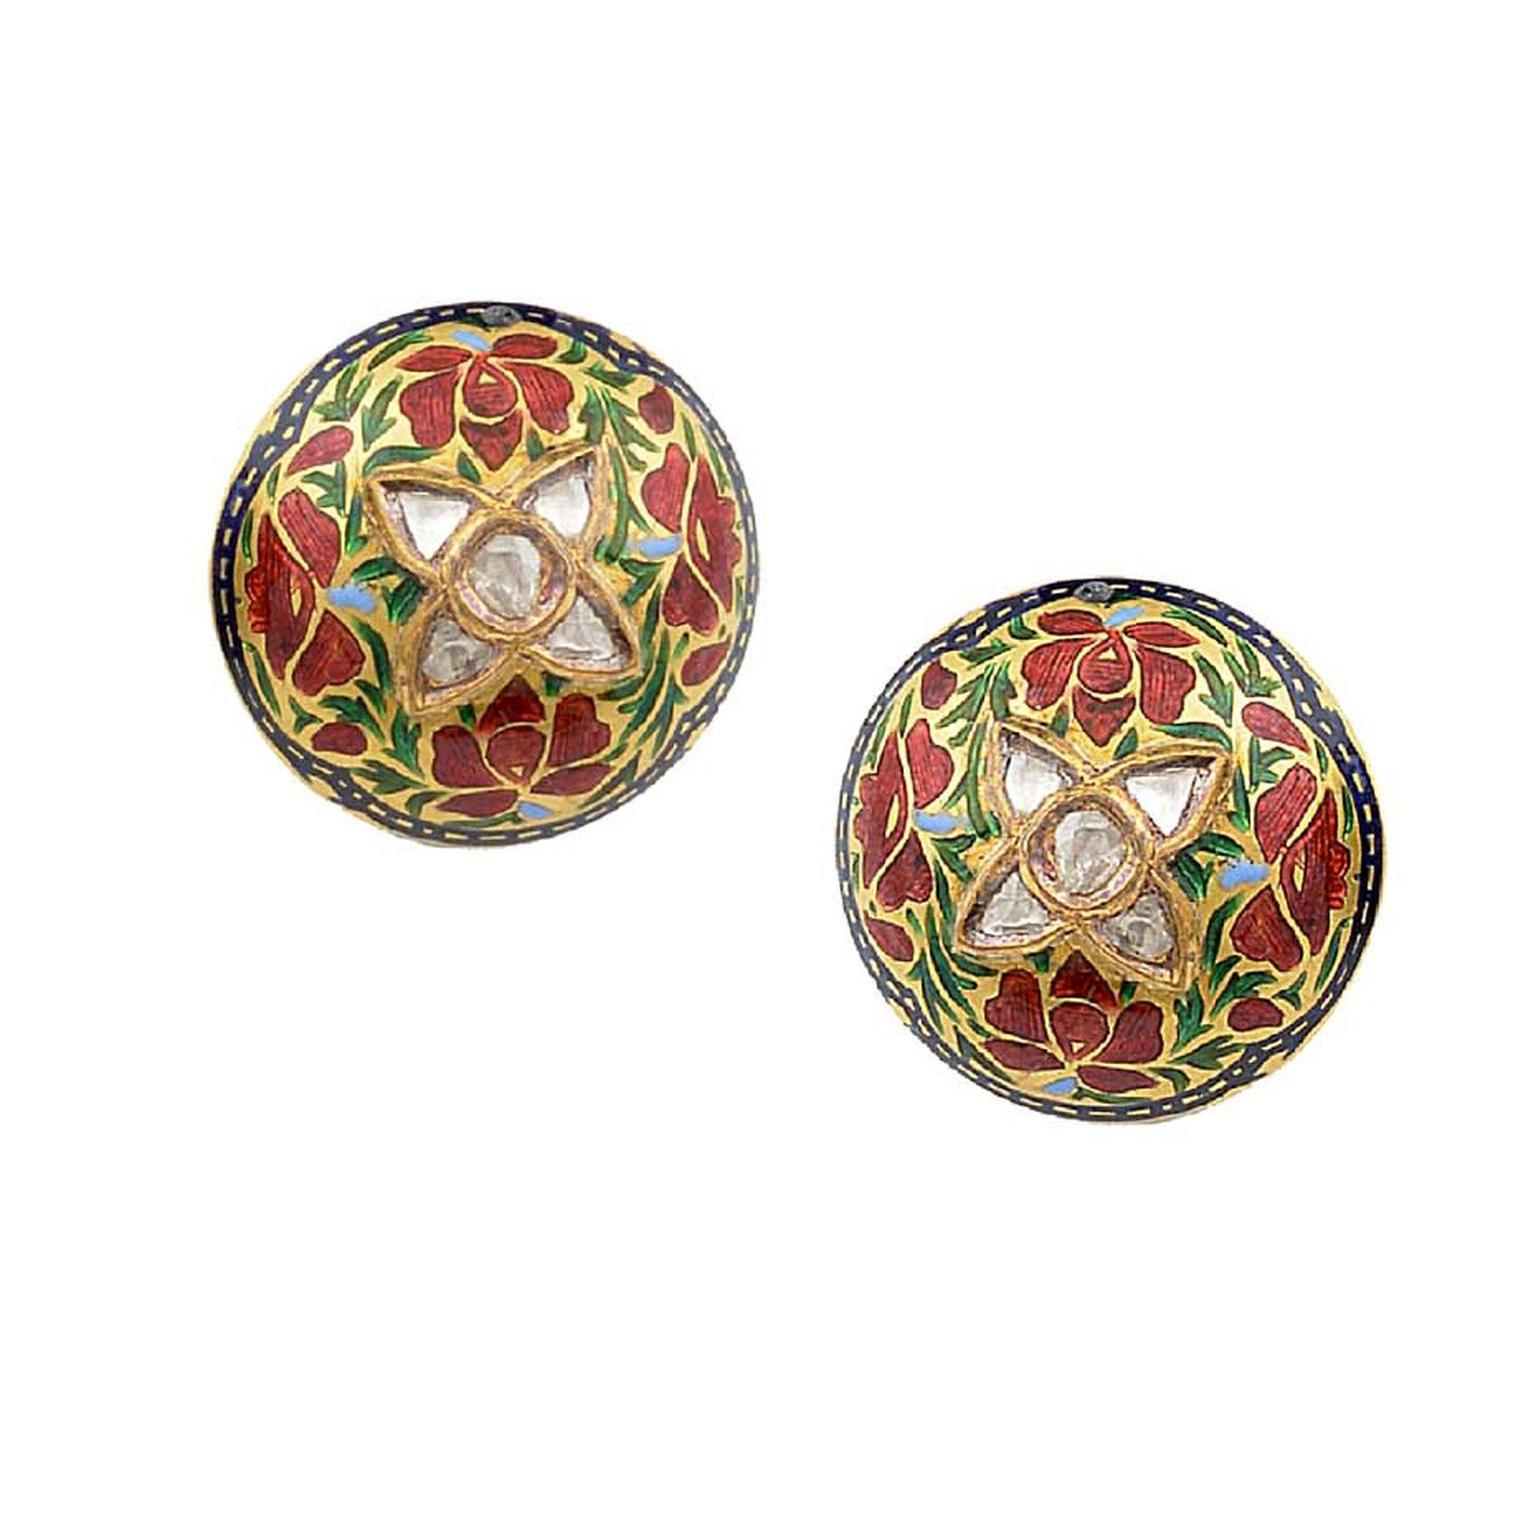 Intricate flower cufflinks by Amrapali, studded with rubies and diamonds.